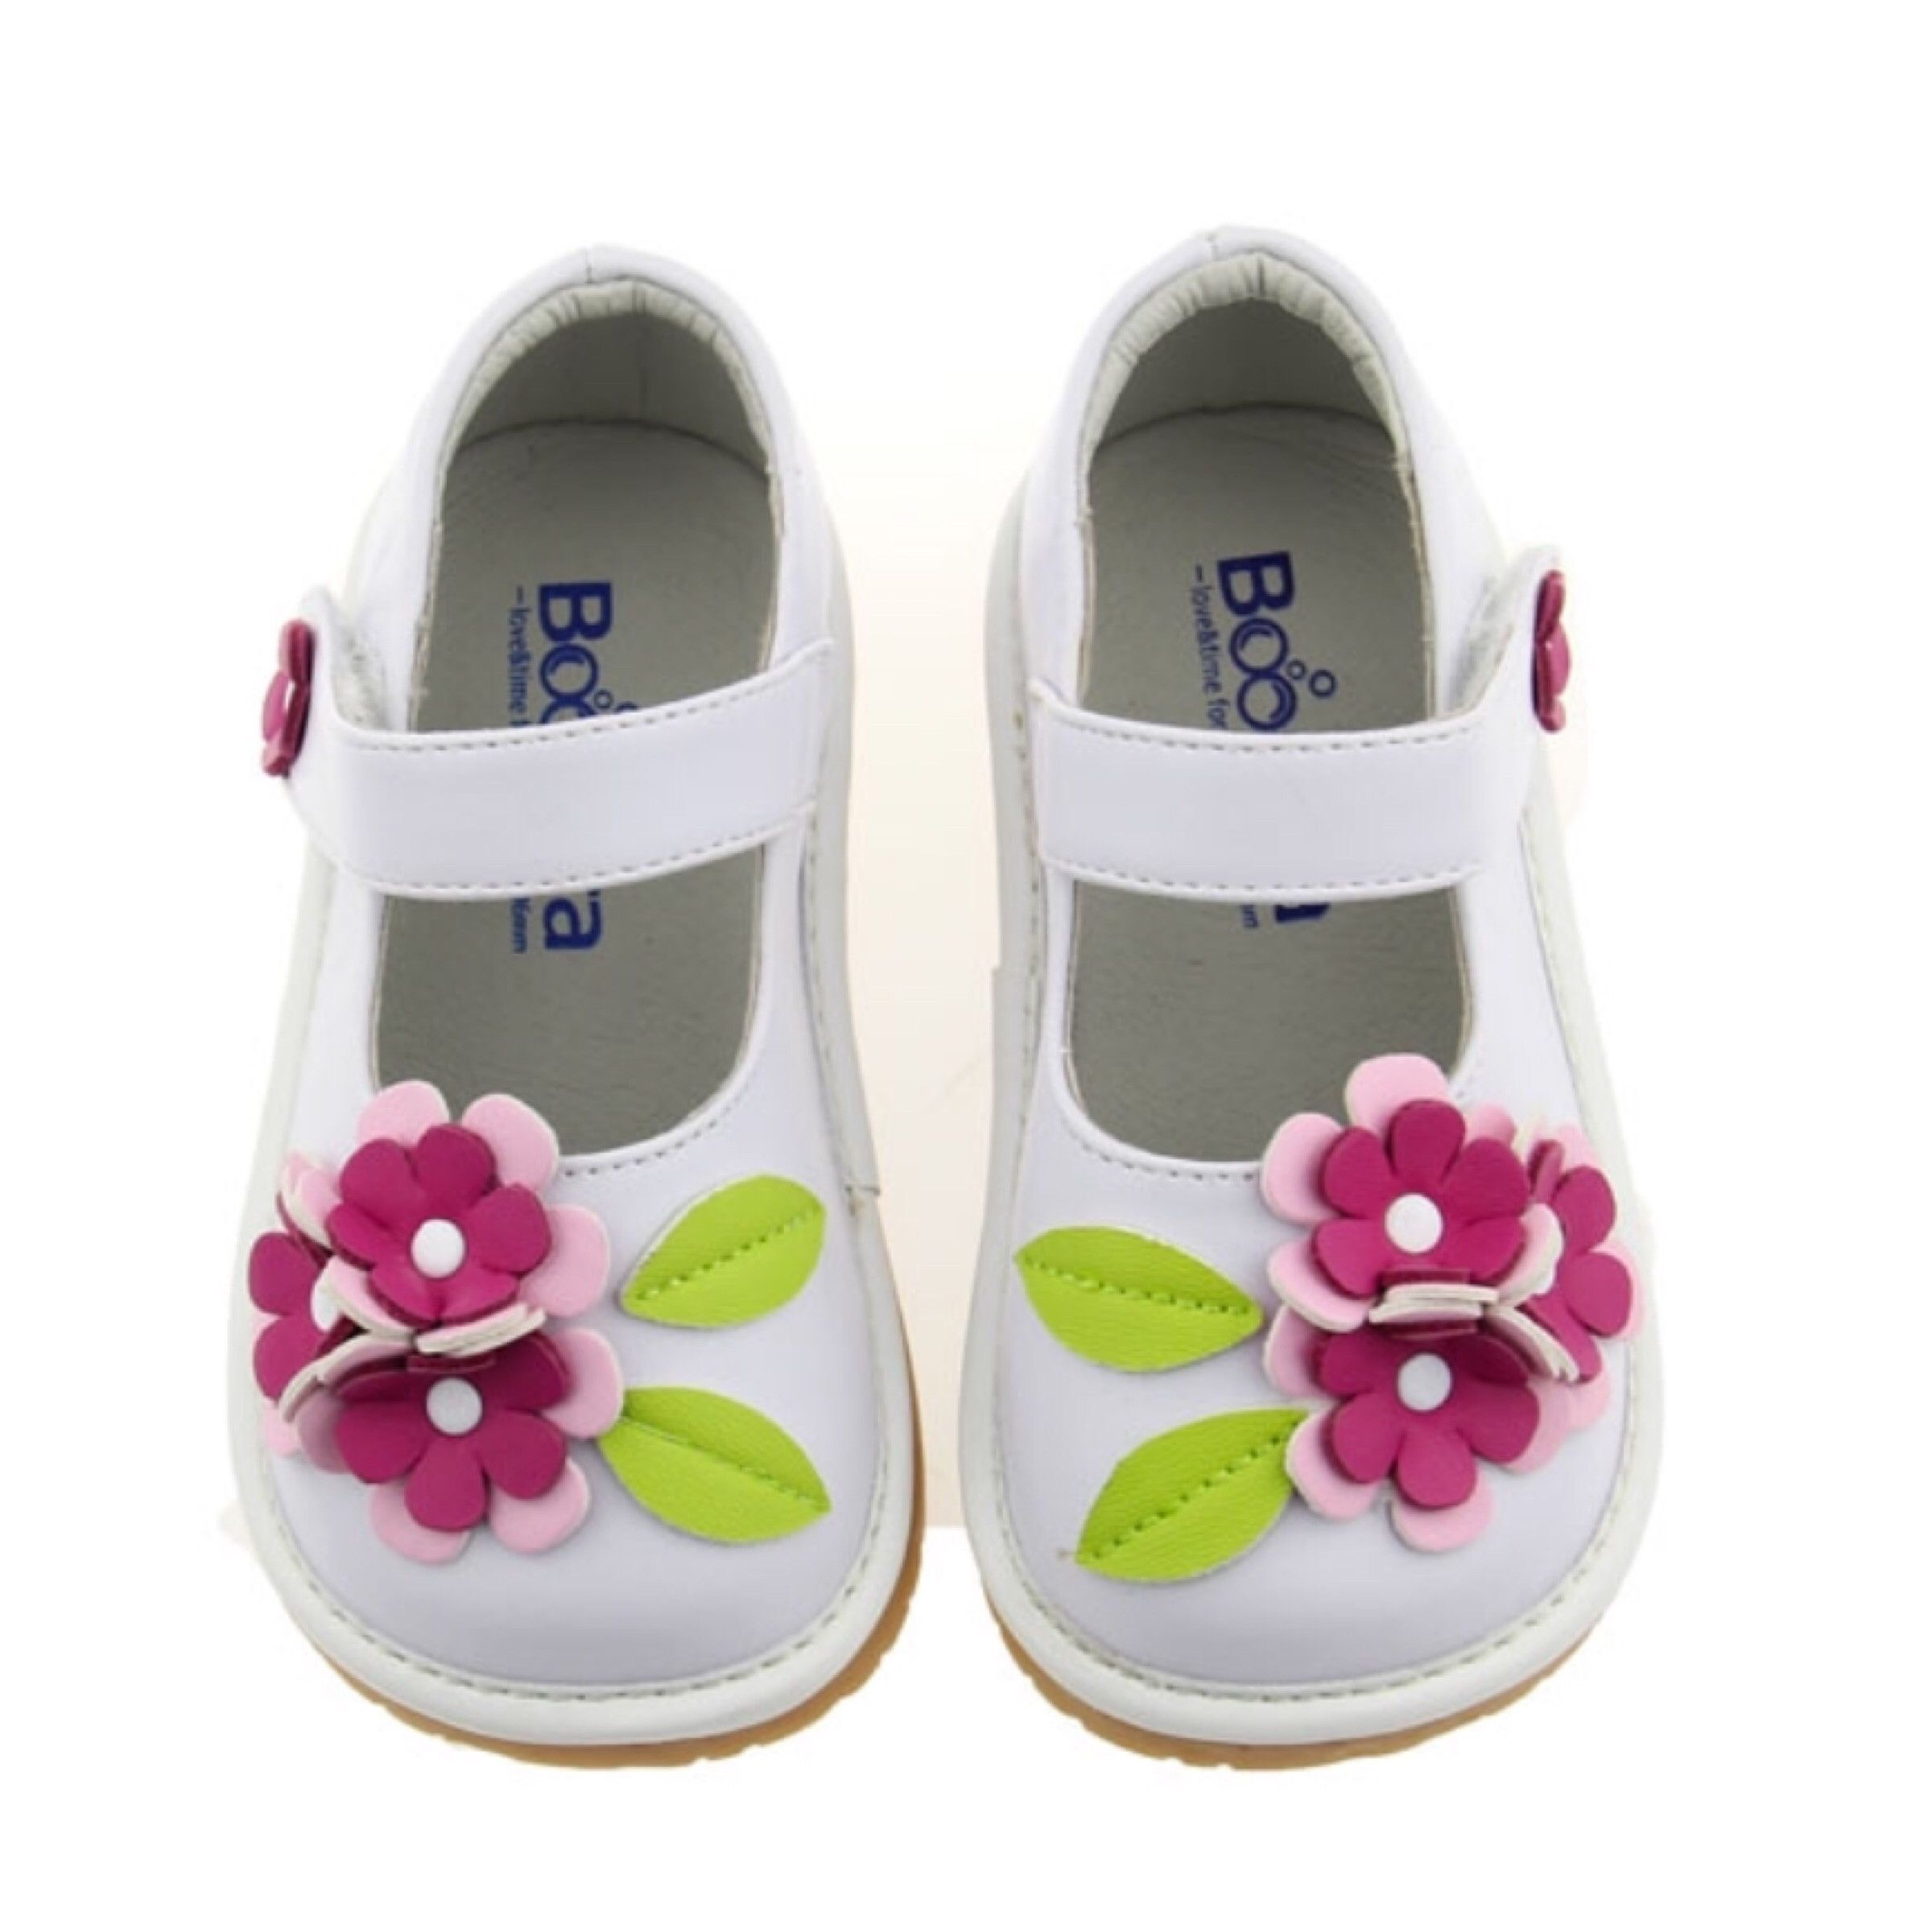 NEW Boocora White Mary Jane Flowers Squeaky Shoes